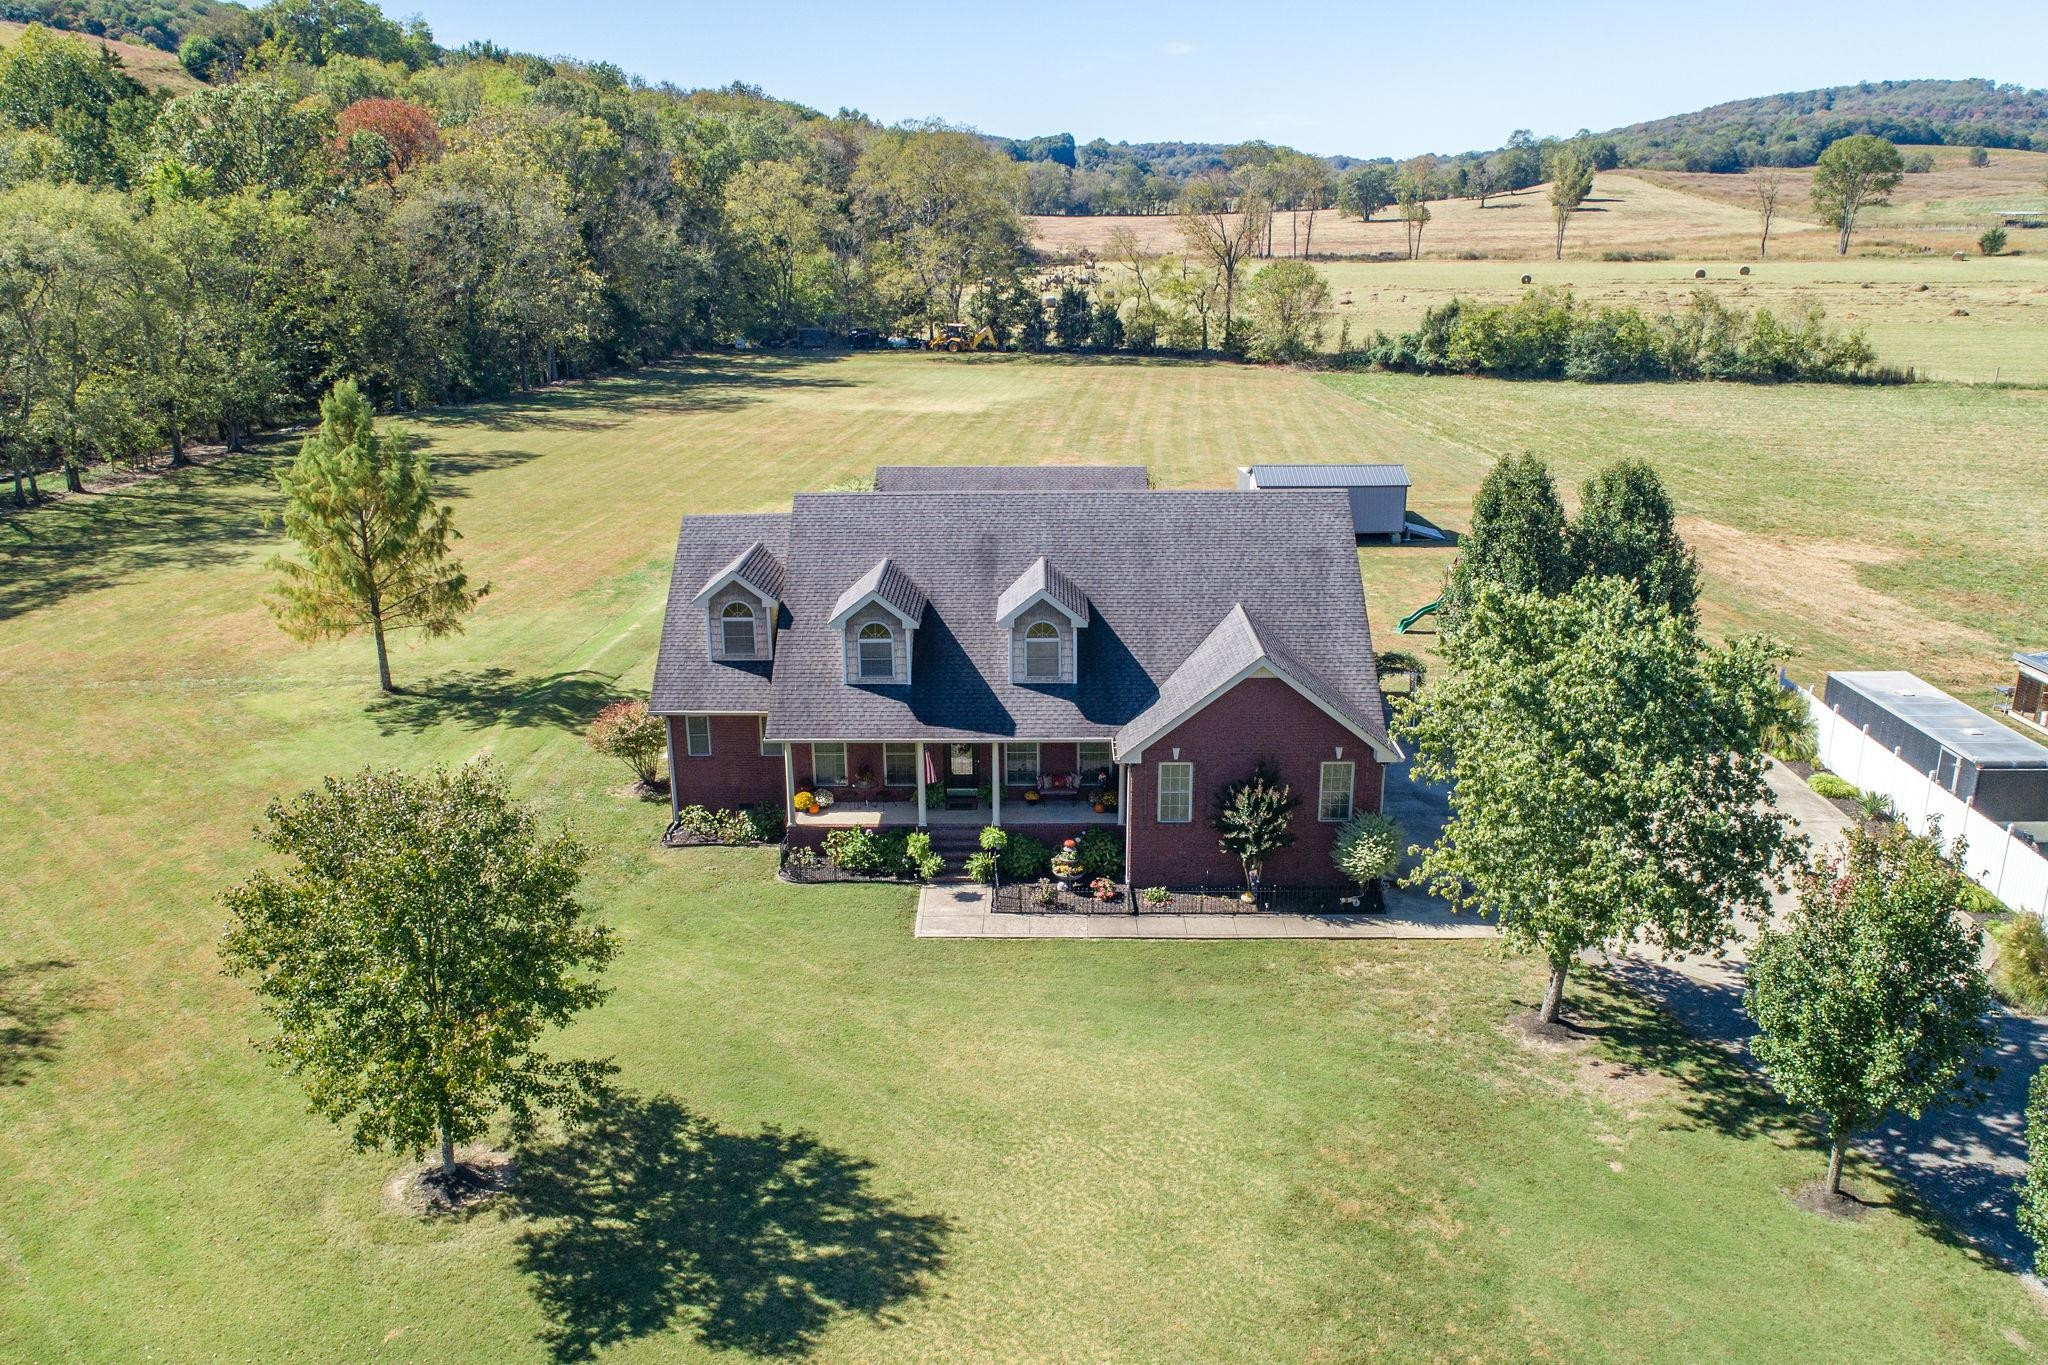 663 Beech Log Rd, Watertown, TN 37184 - Watertown, TN real estate listing